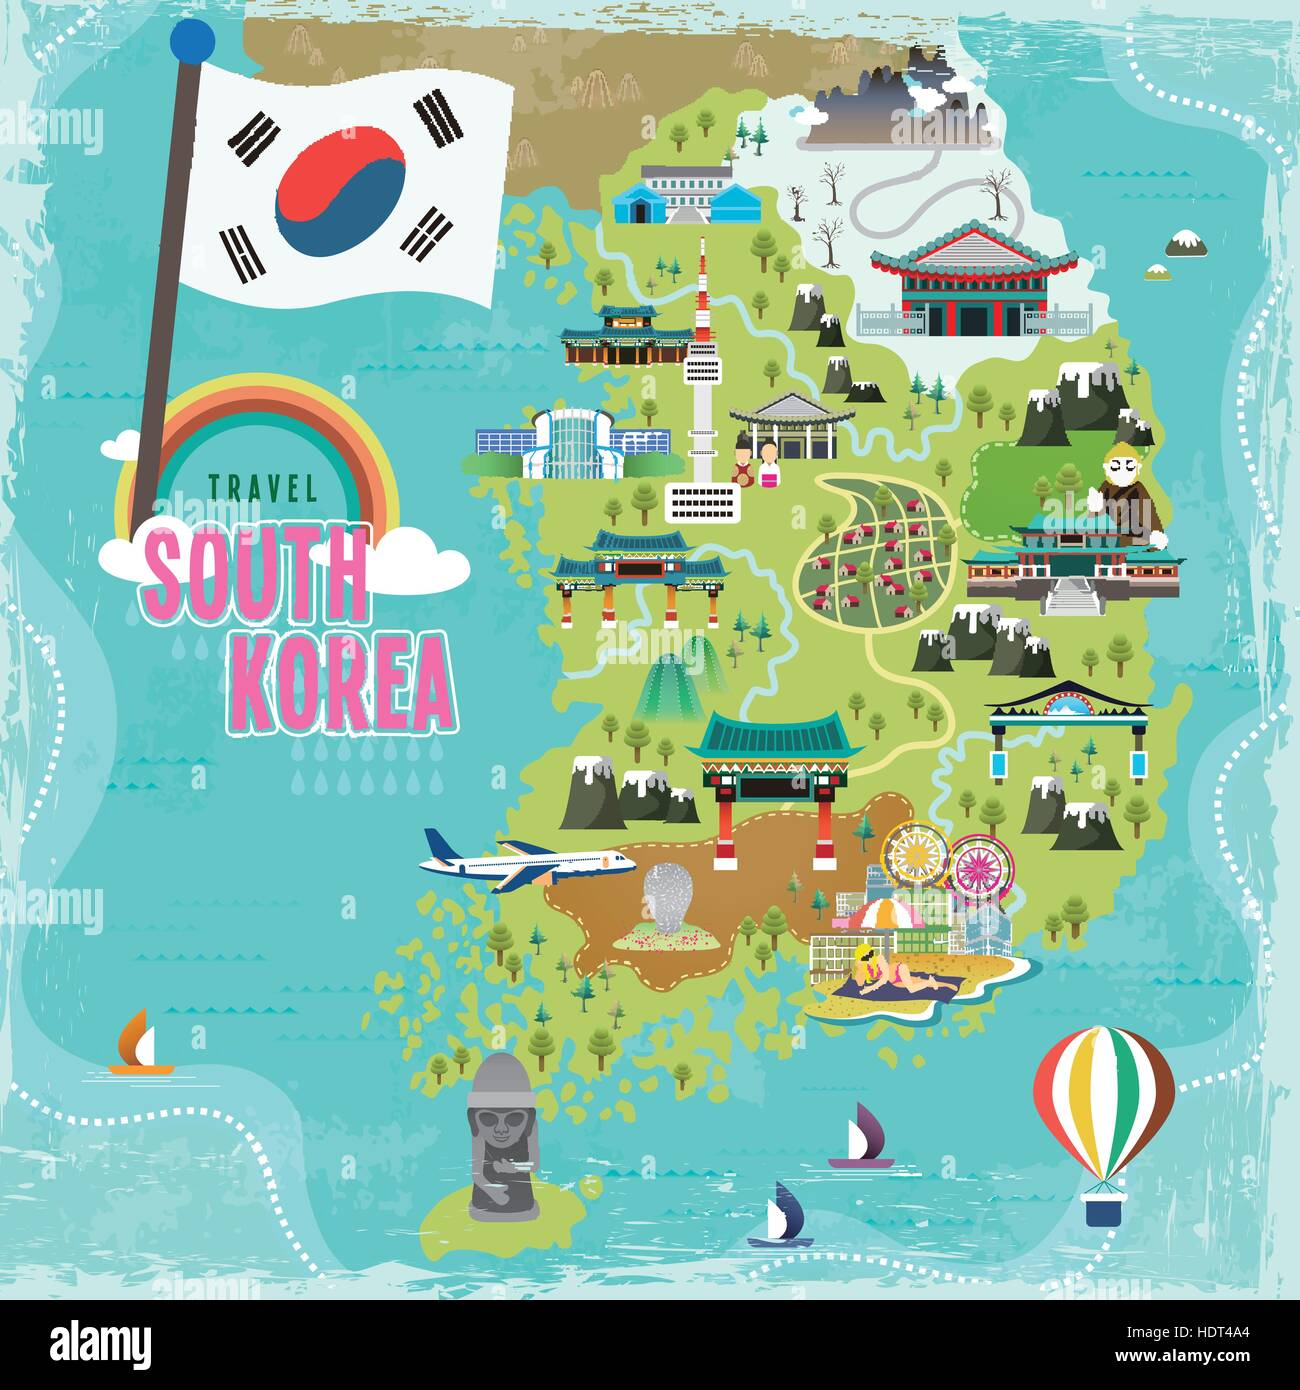 Lovely South Korea Travel Map In Flat Style Stock Vector Art - Map of south korea